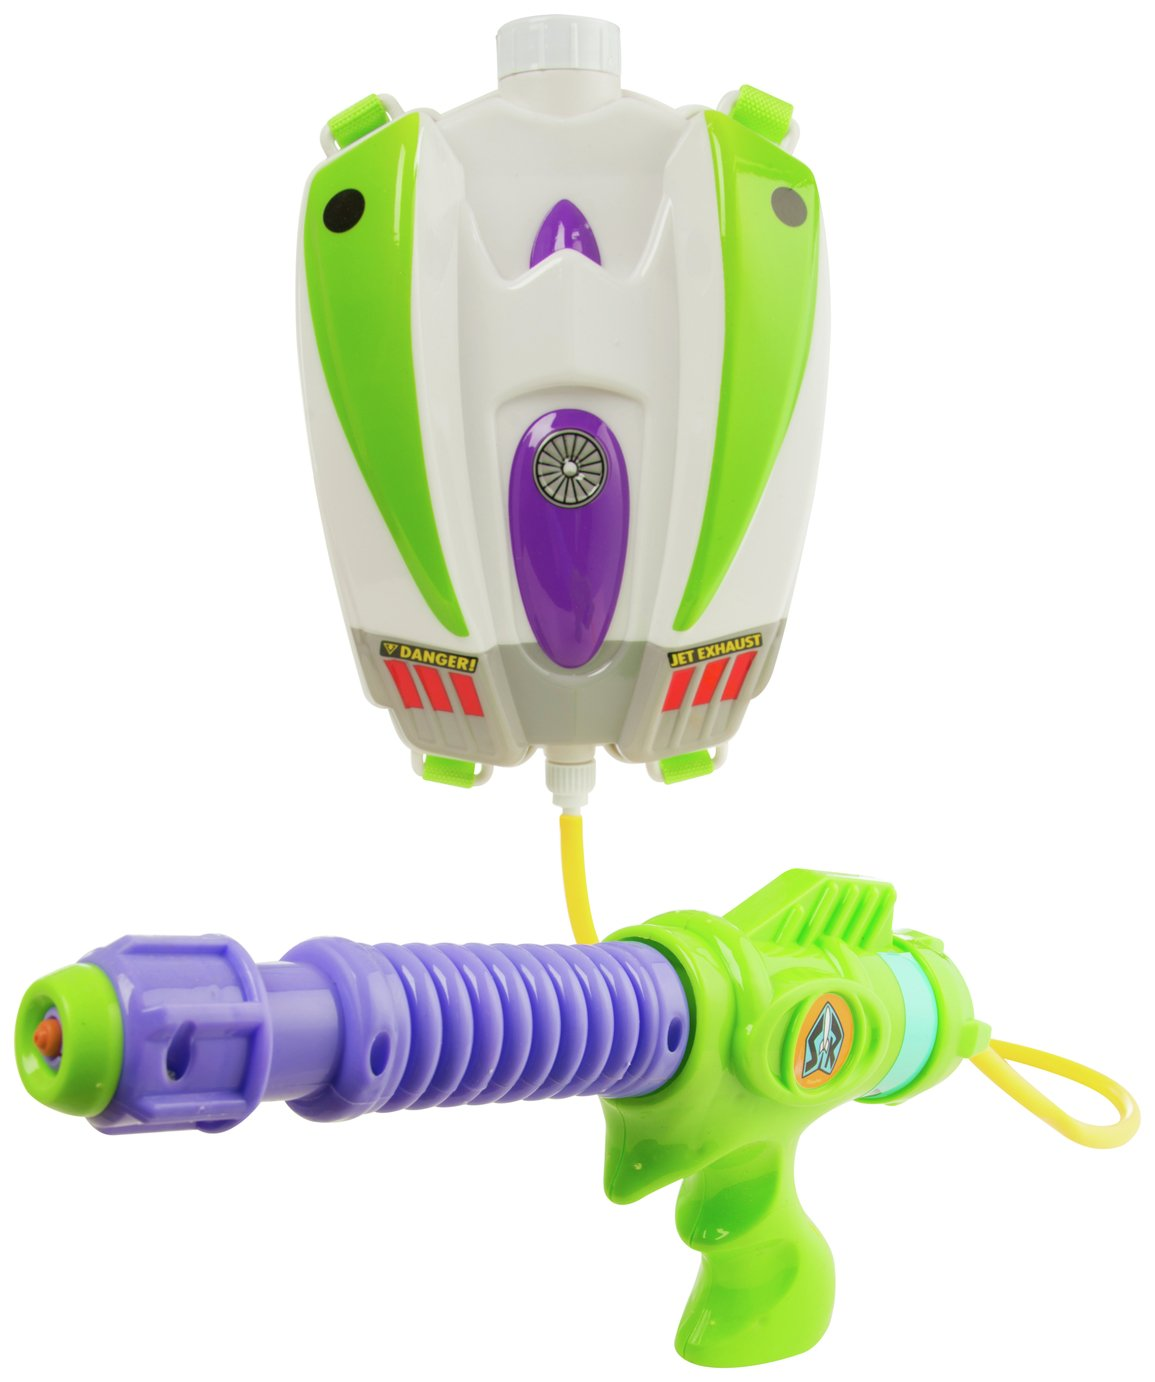 Toy Story Buzz Lightyear Water Blaster Backpack